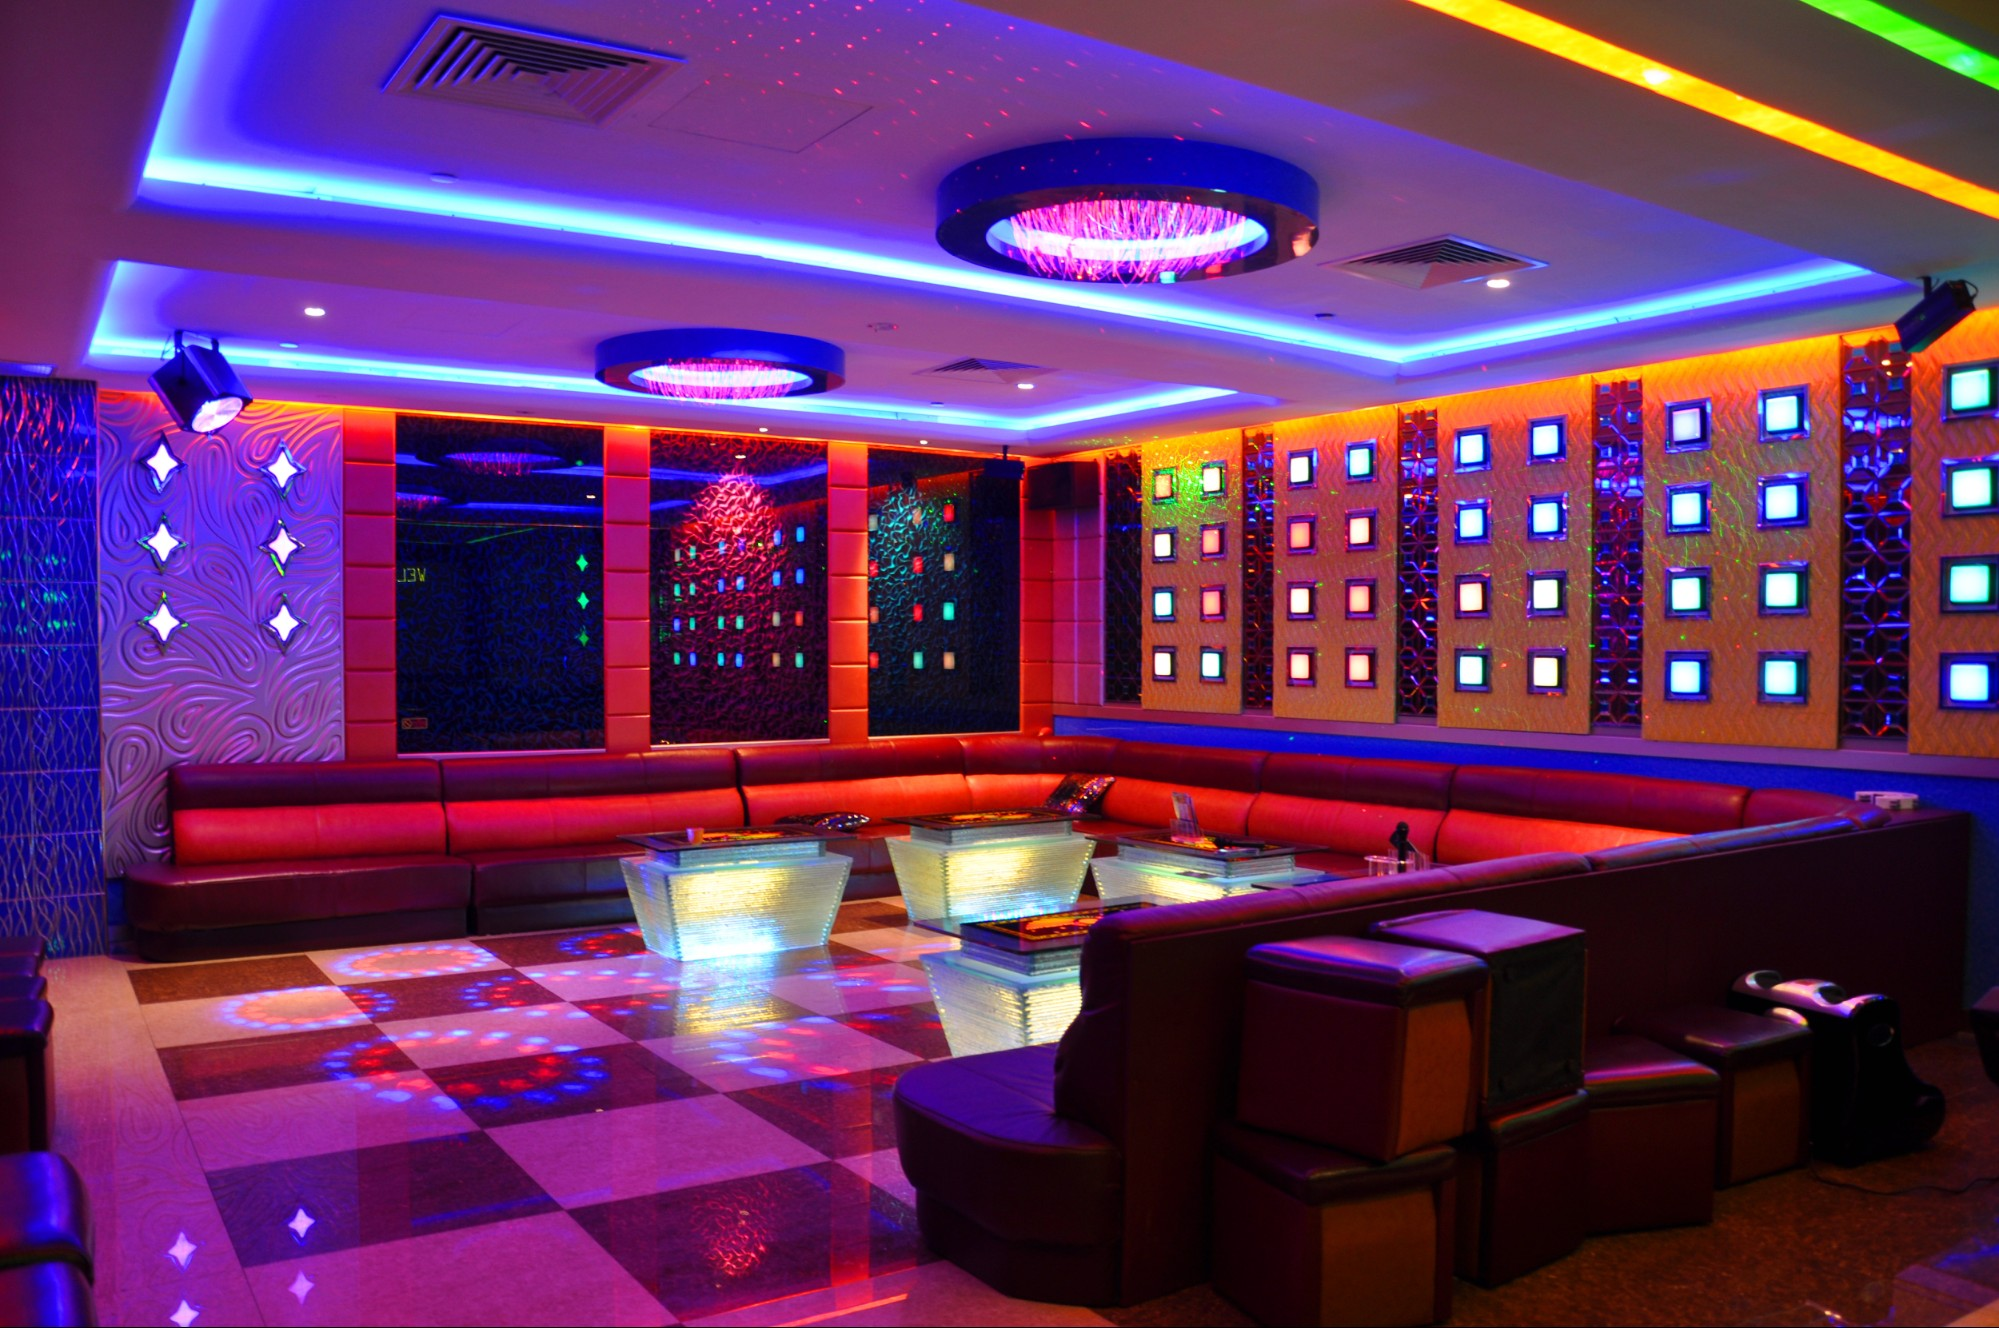 Singapore S Most Luxurious Ktv Outlet Accommodates 60